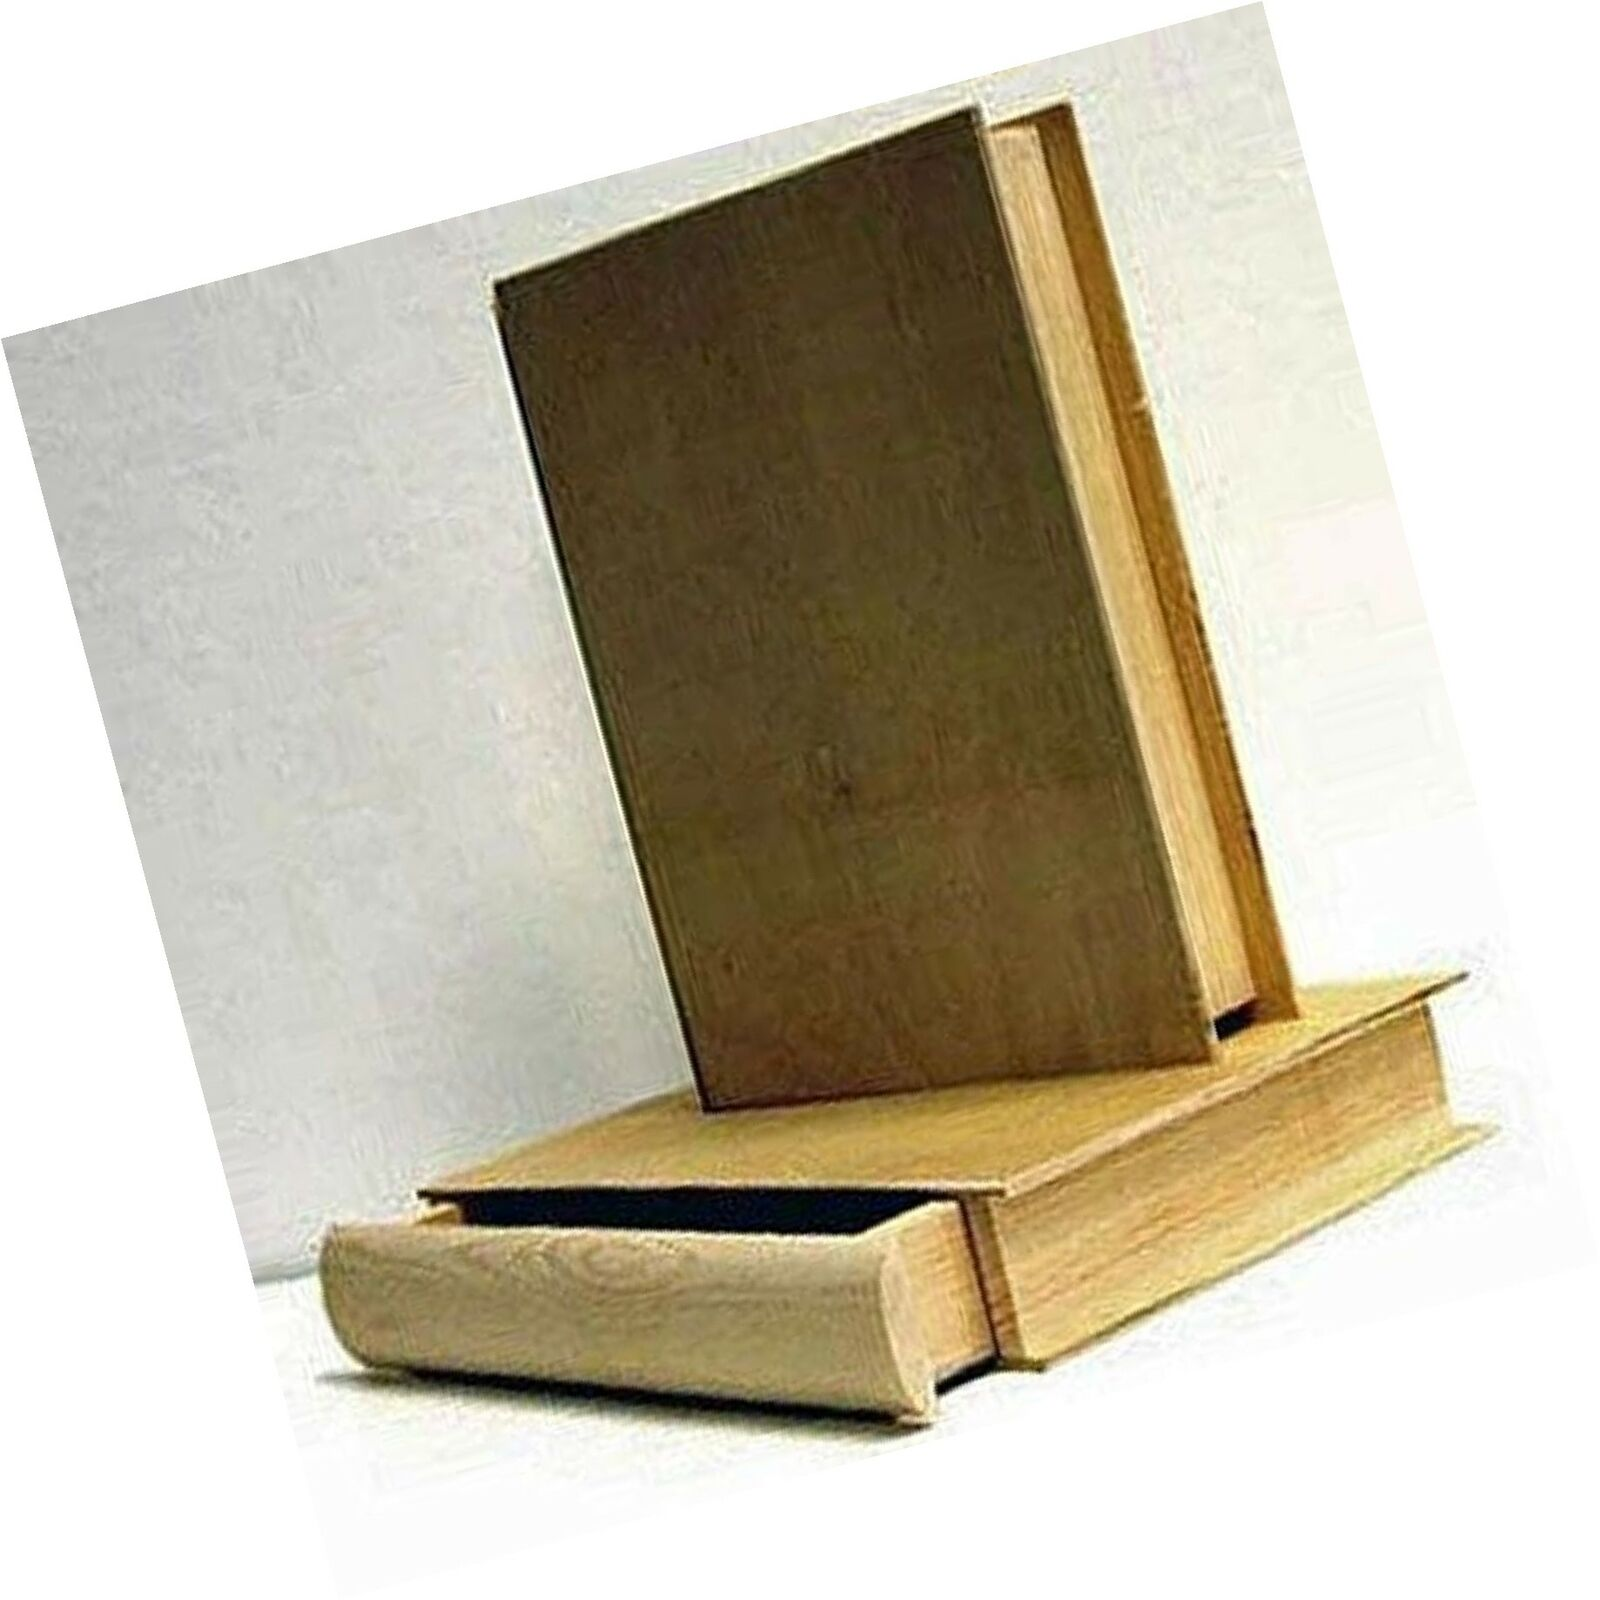 NicoleCrafts 1 X Unfinished Pine Wood 8 Book BOX with Pull Out Drawer,Tan